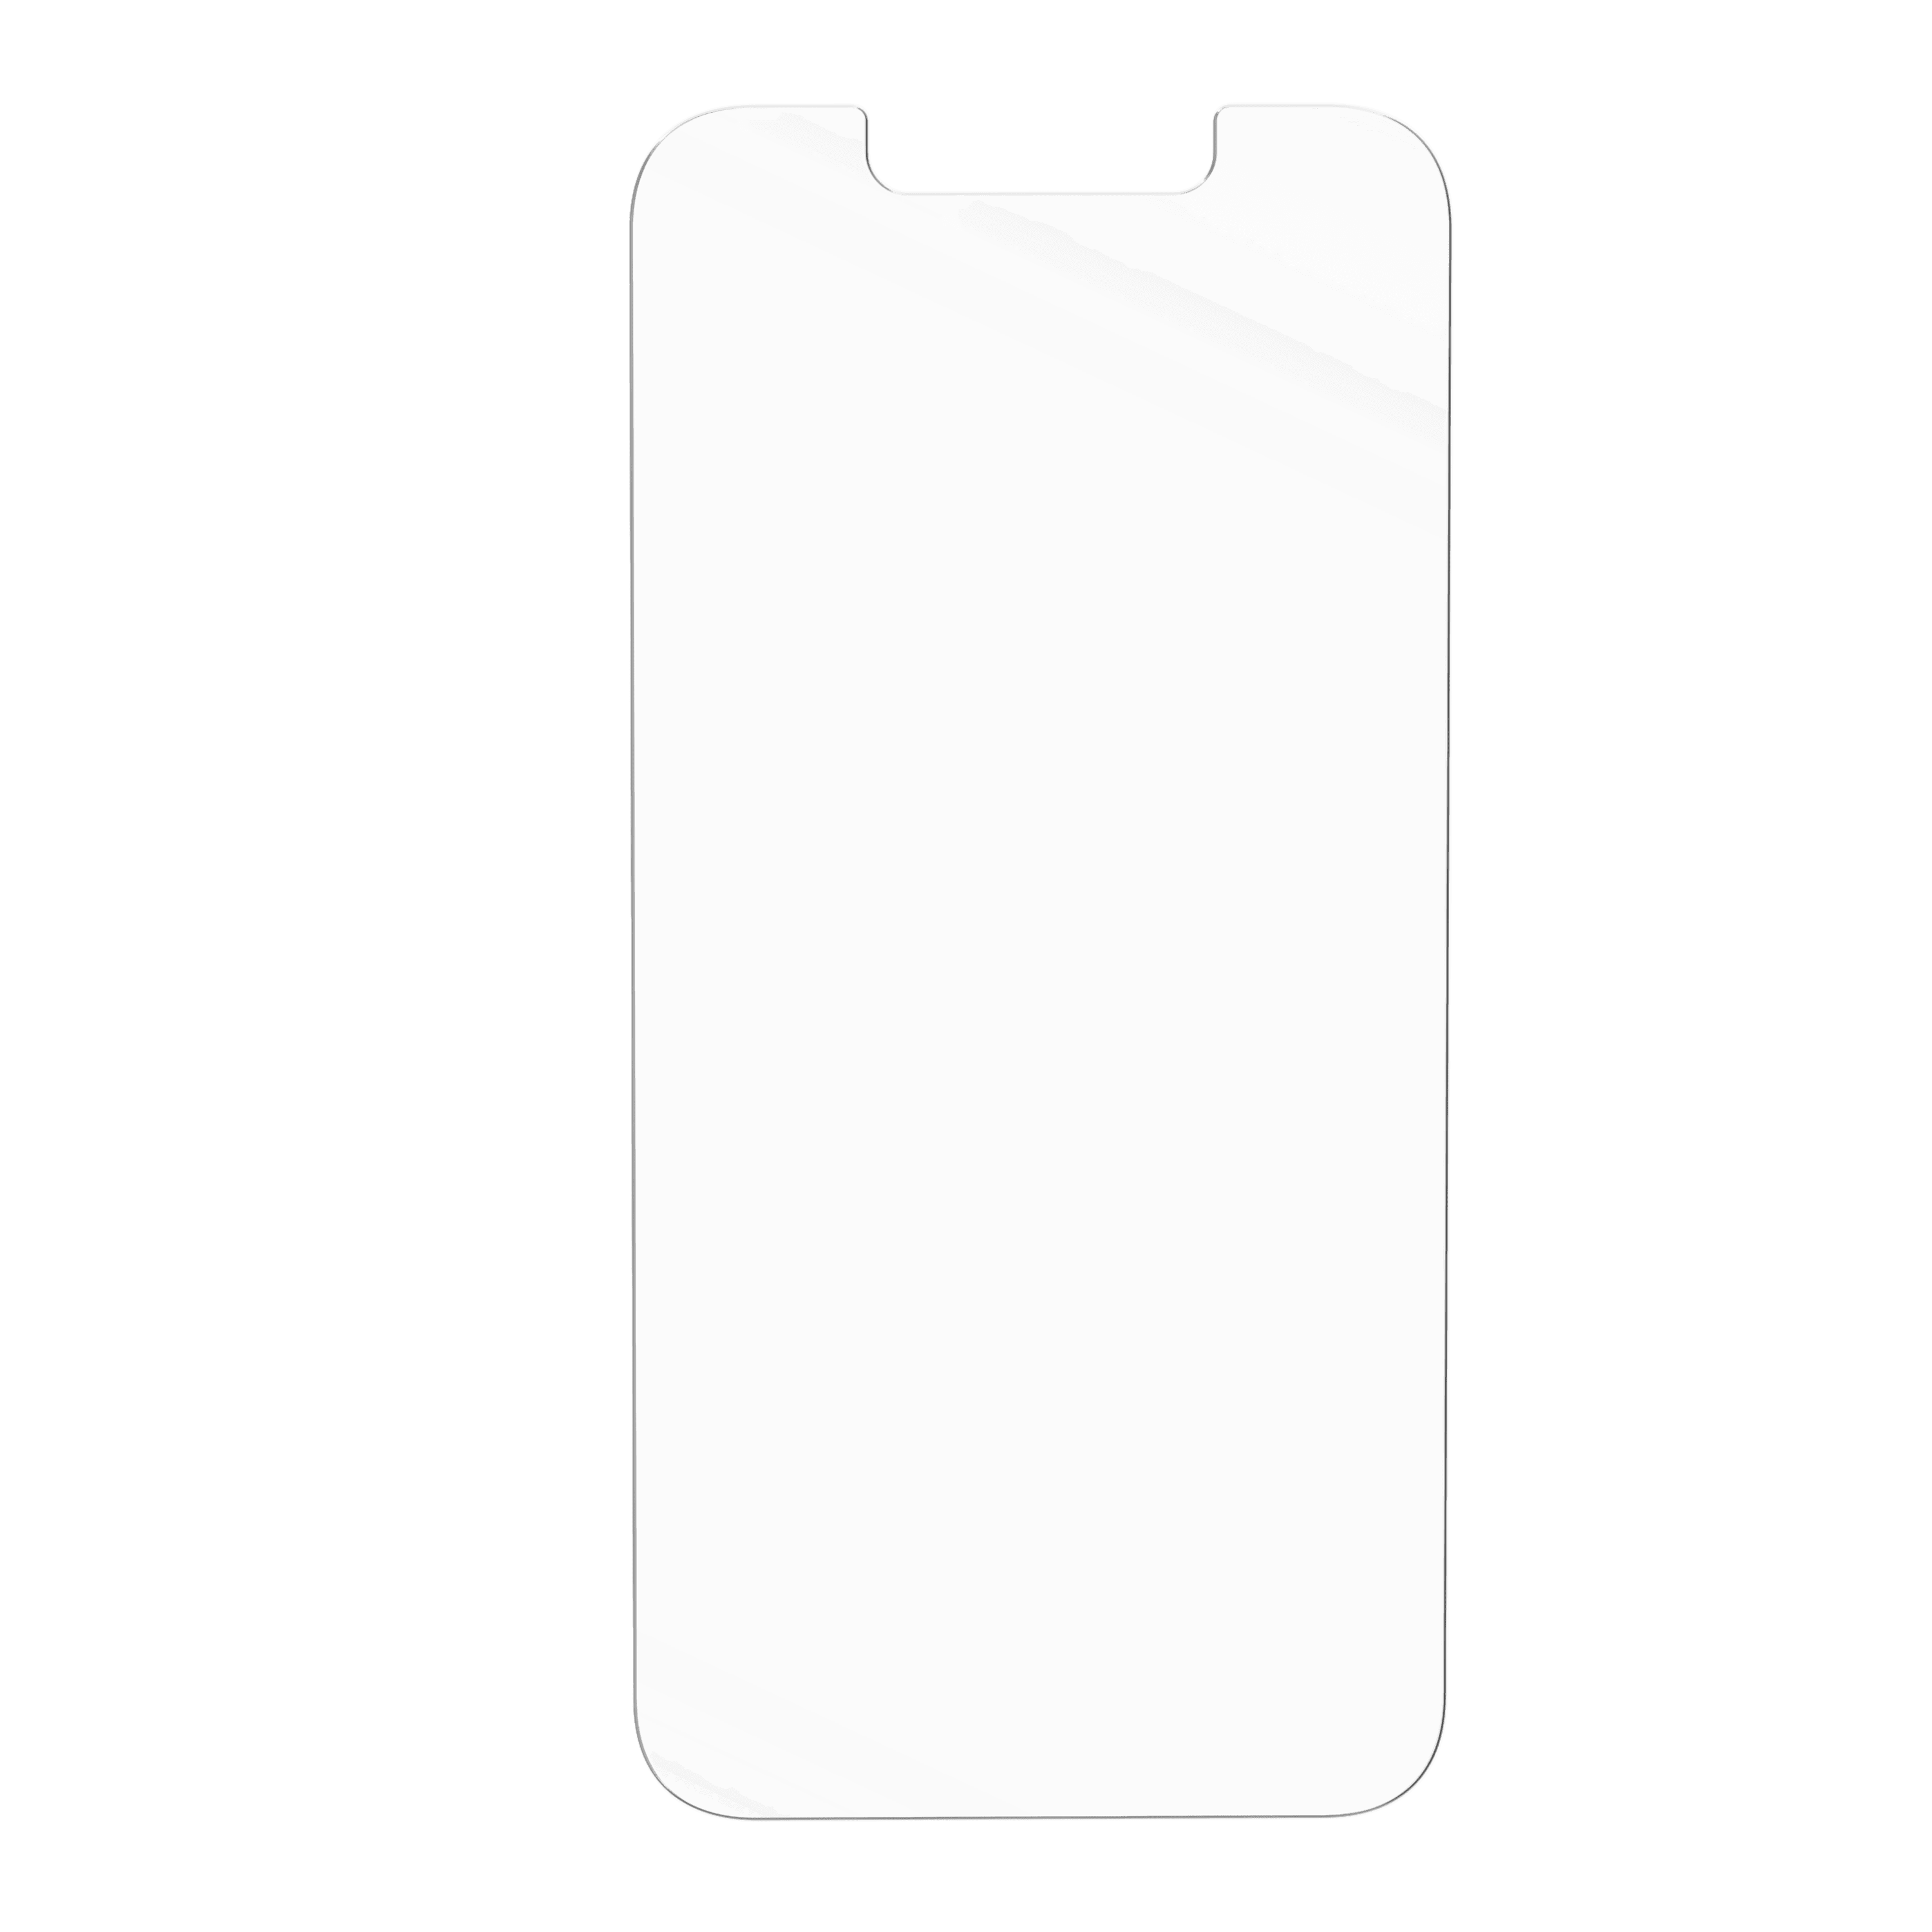 wholesale cellphone accessories OTTERBOX ALPHA GLASS ANTIMICROBIAL SCREEN PROTECTORS